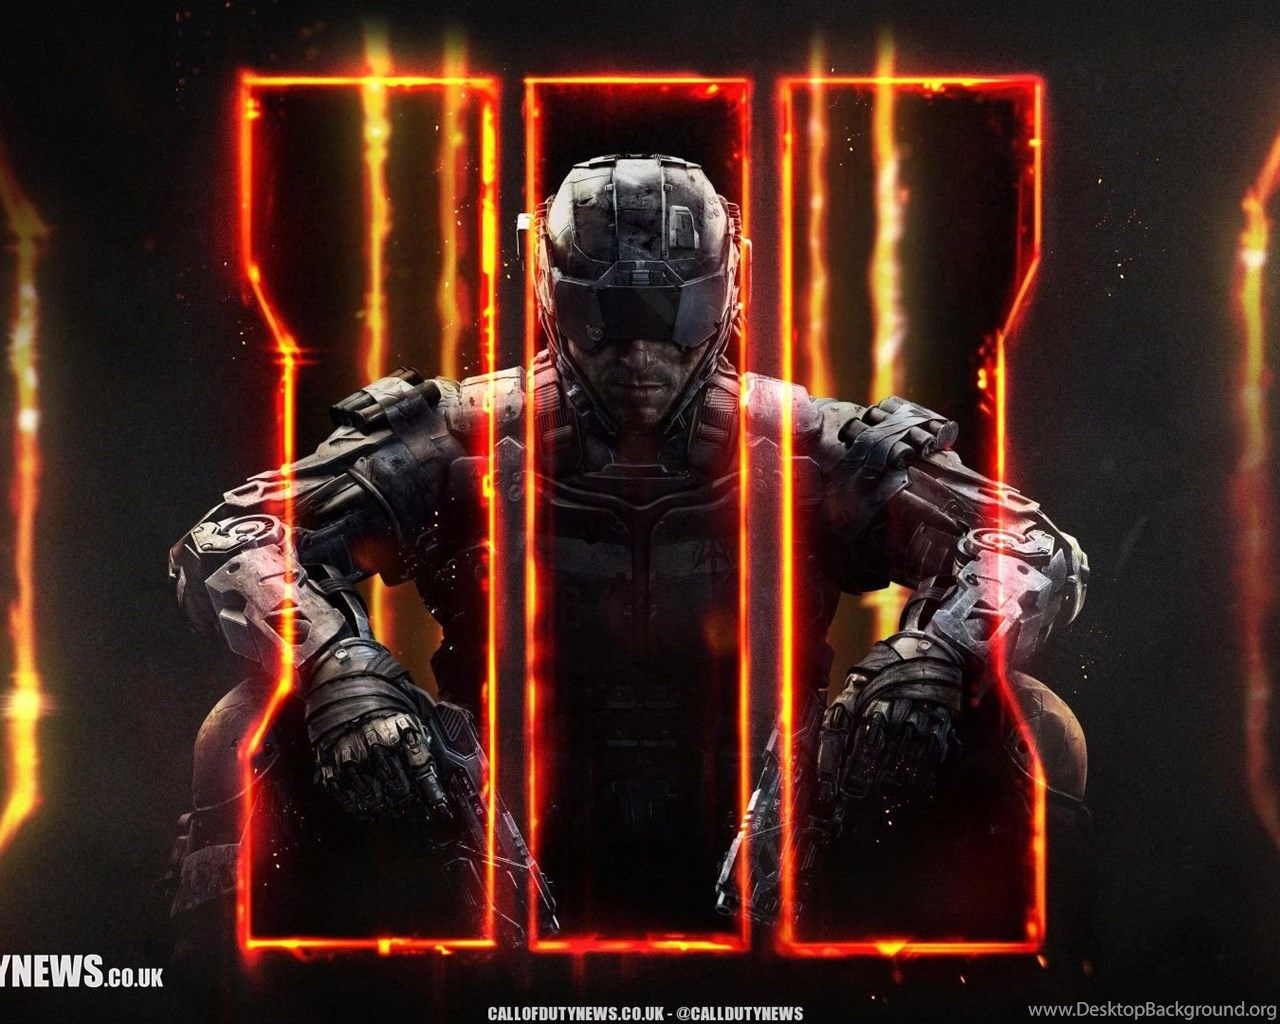 Black Ops 3 Bo3 Wallpaper 2 Desktop Background